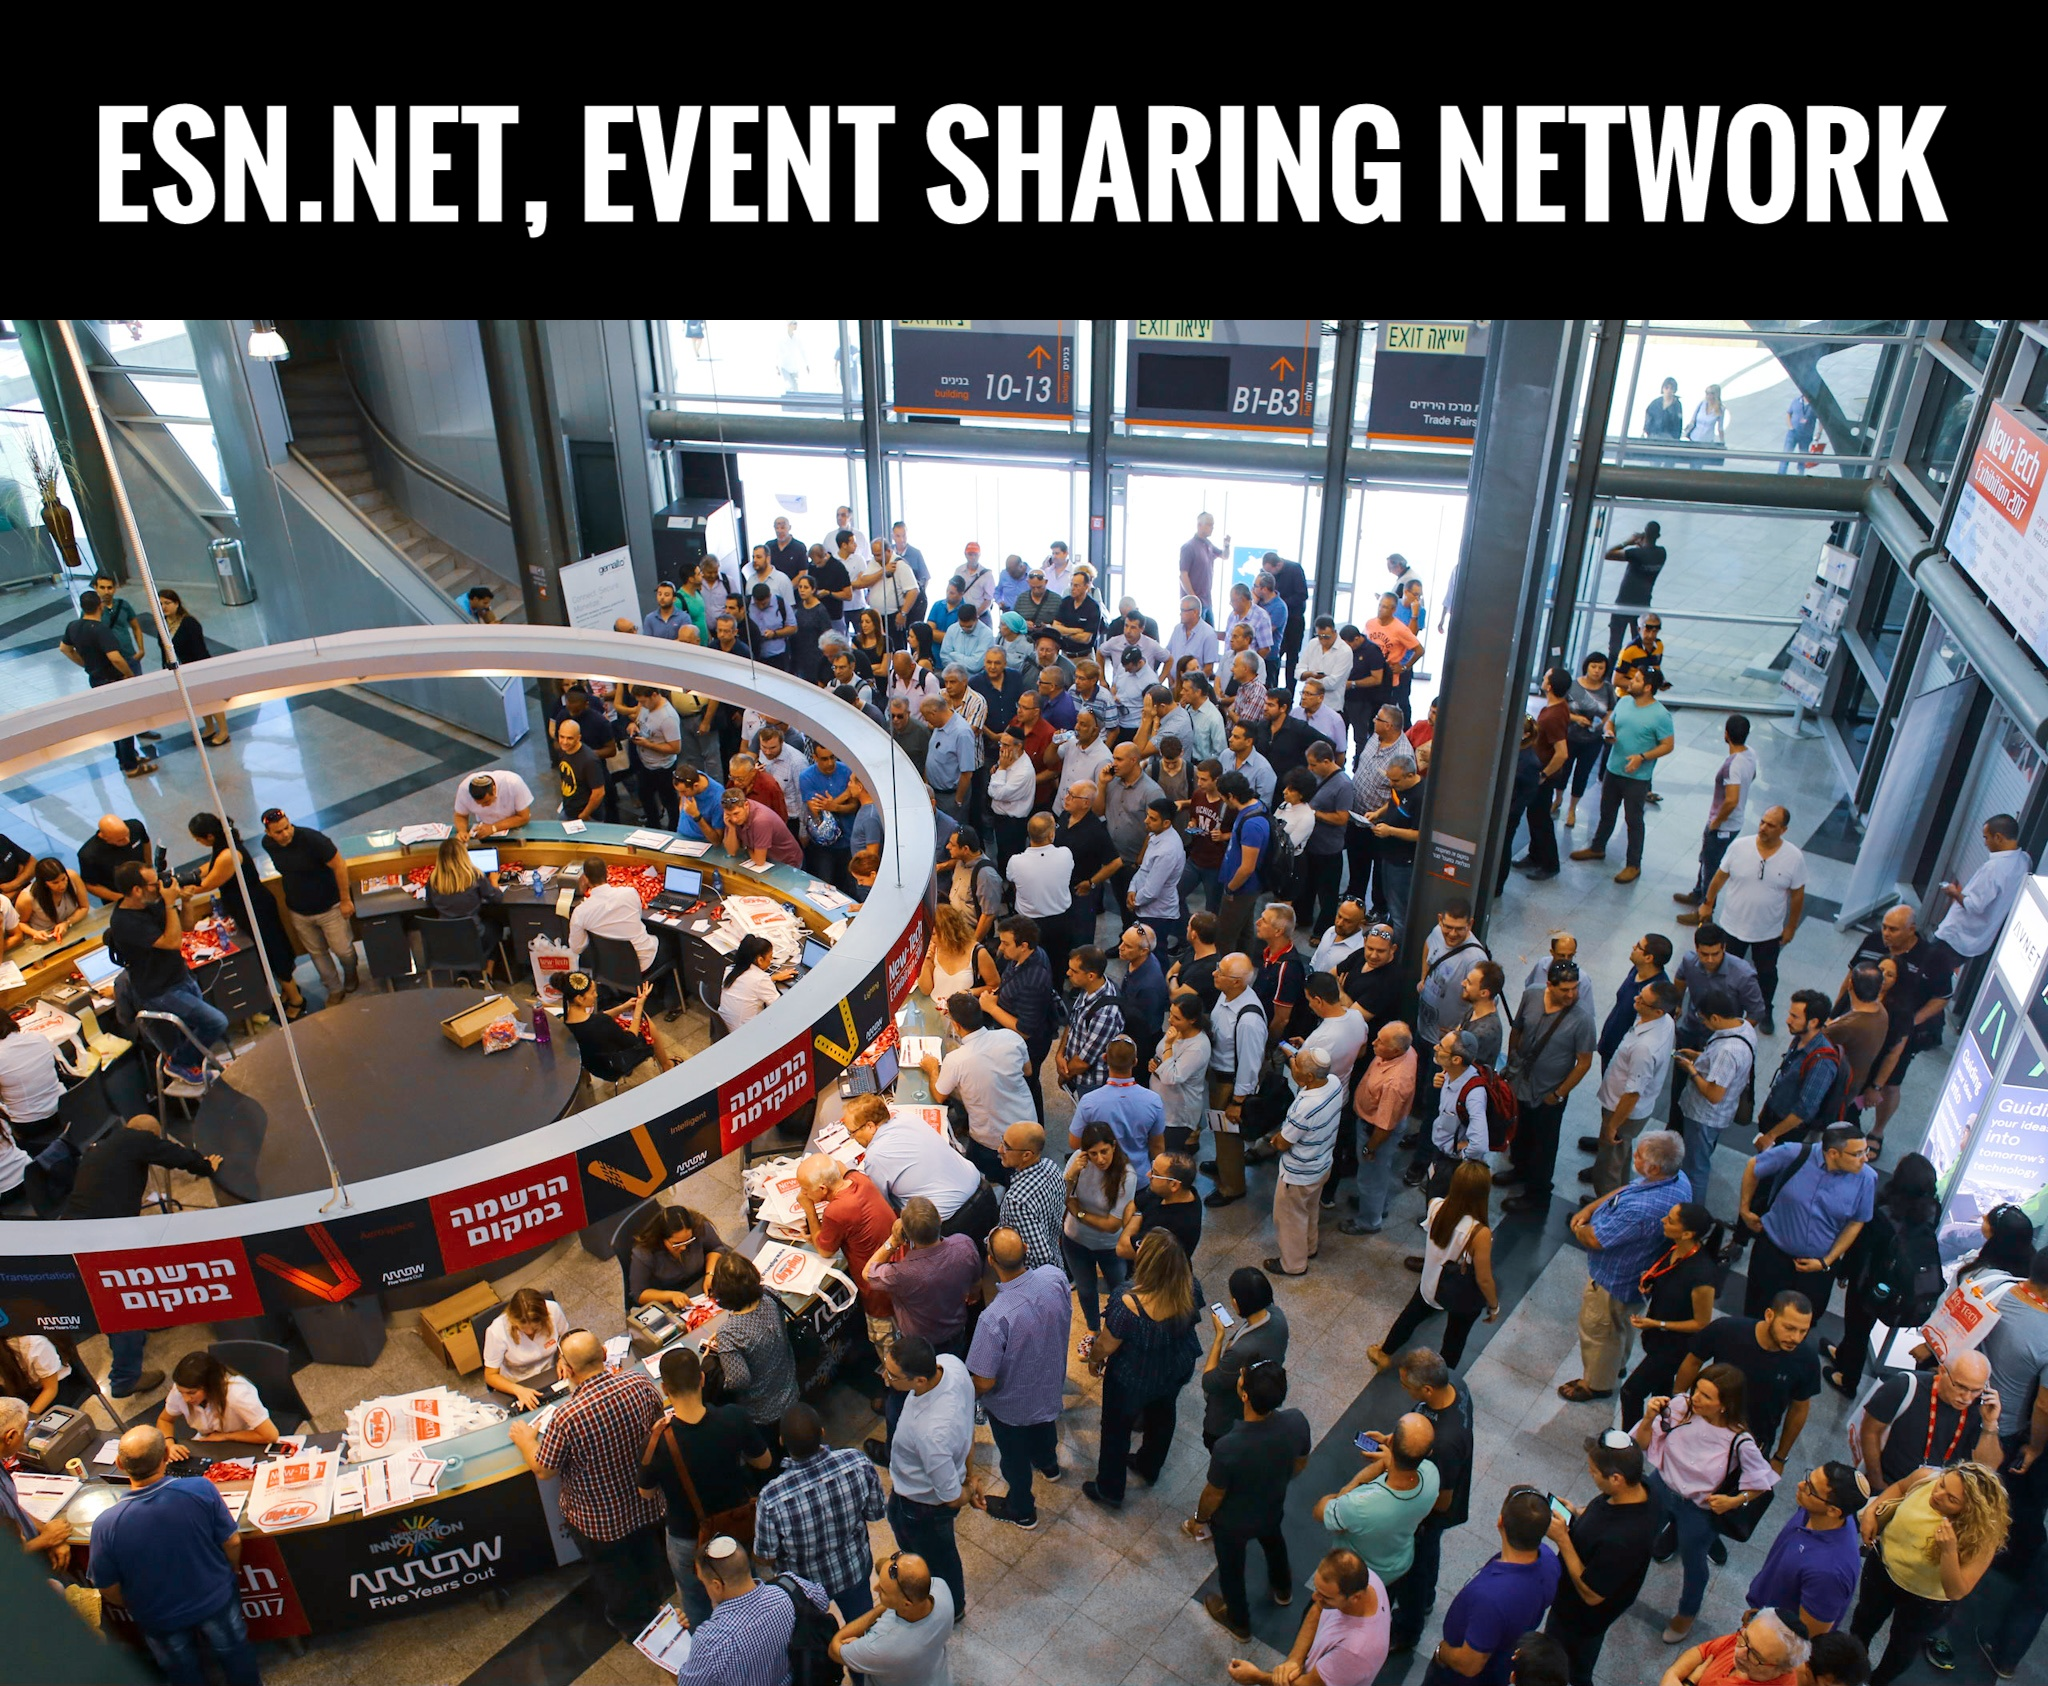 ESN.net, event sharing network, domain name for sale